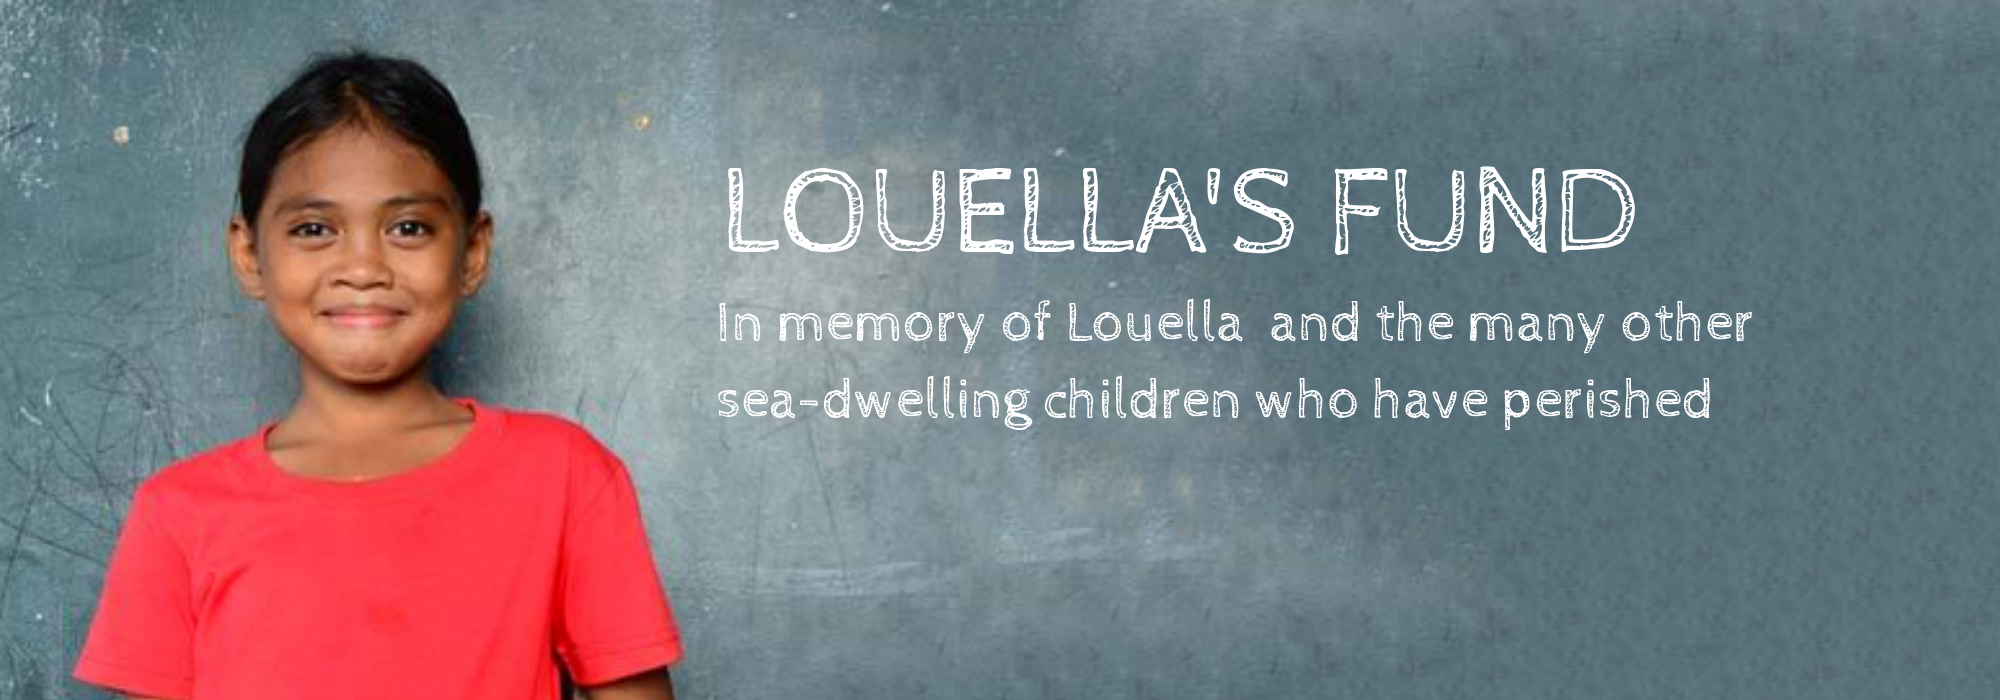 louella-fund.png